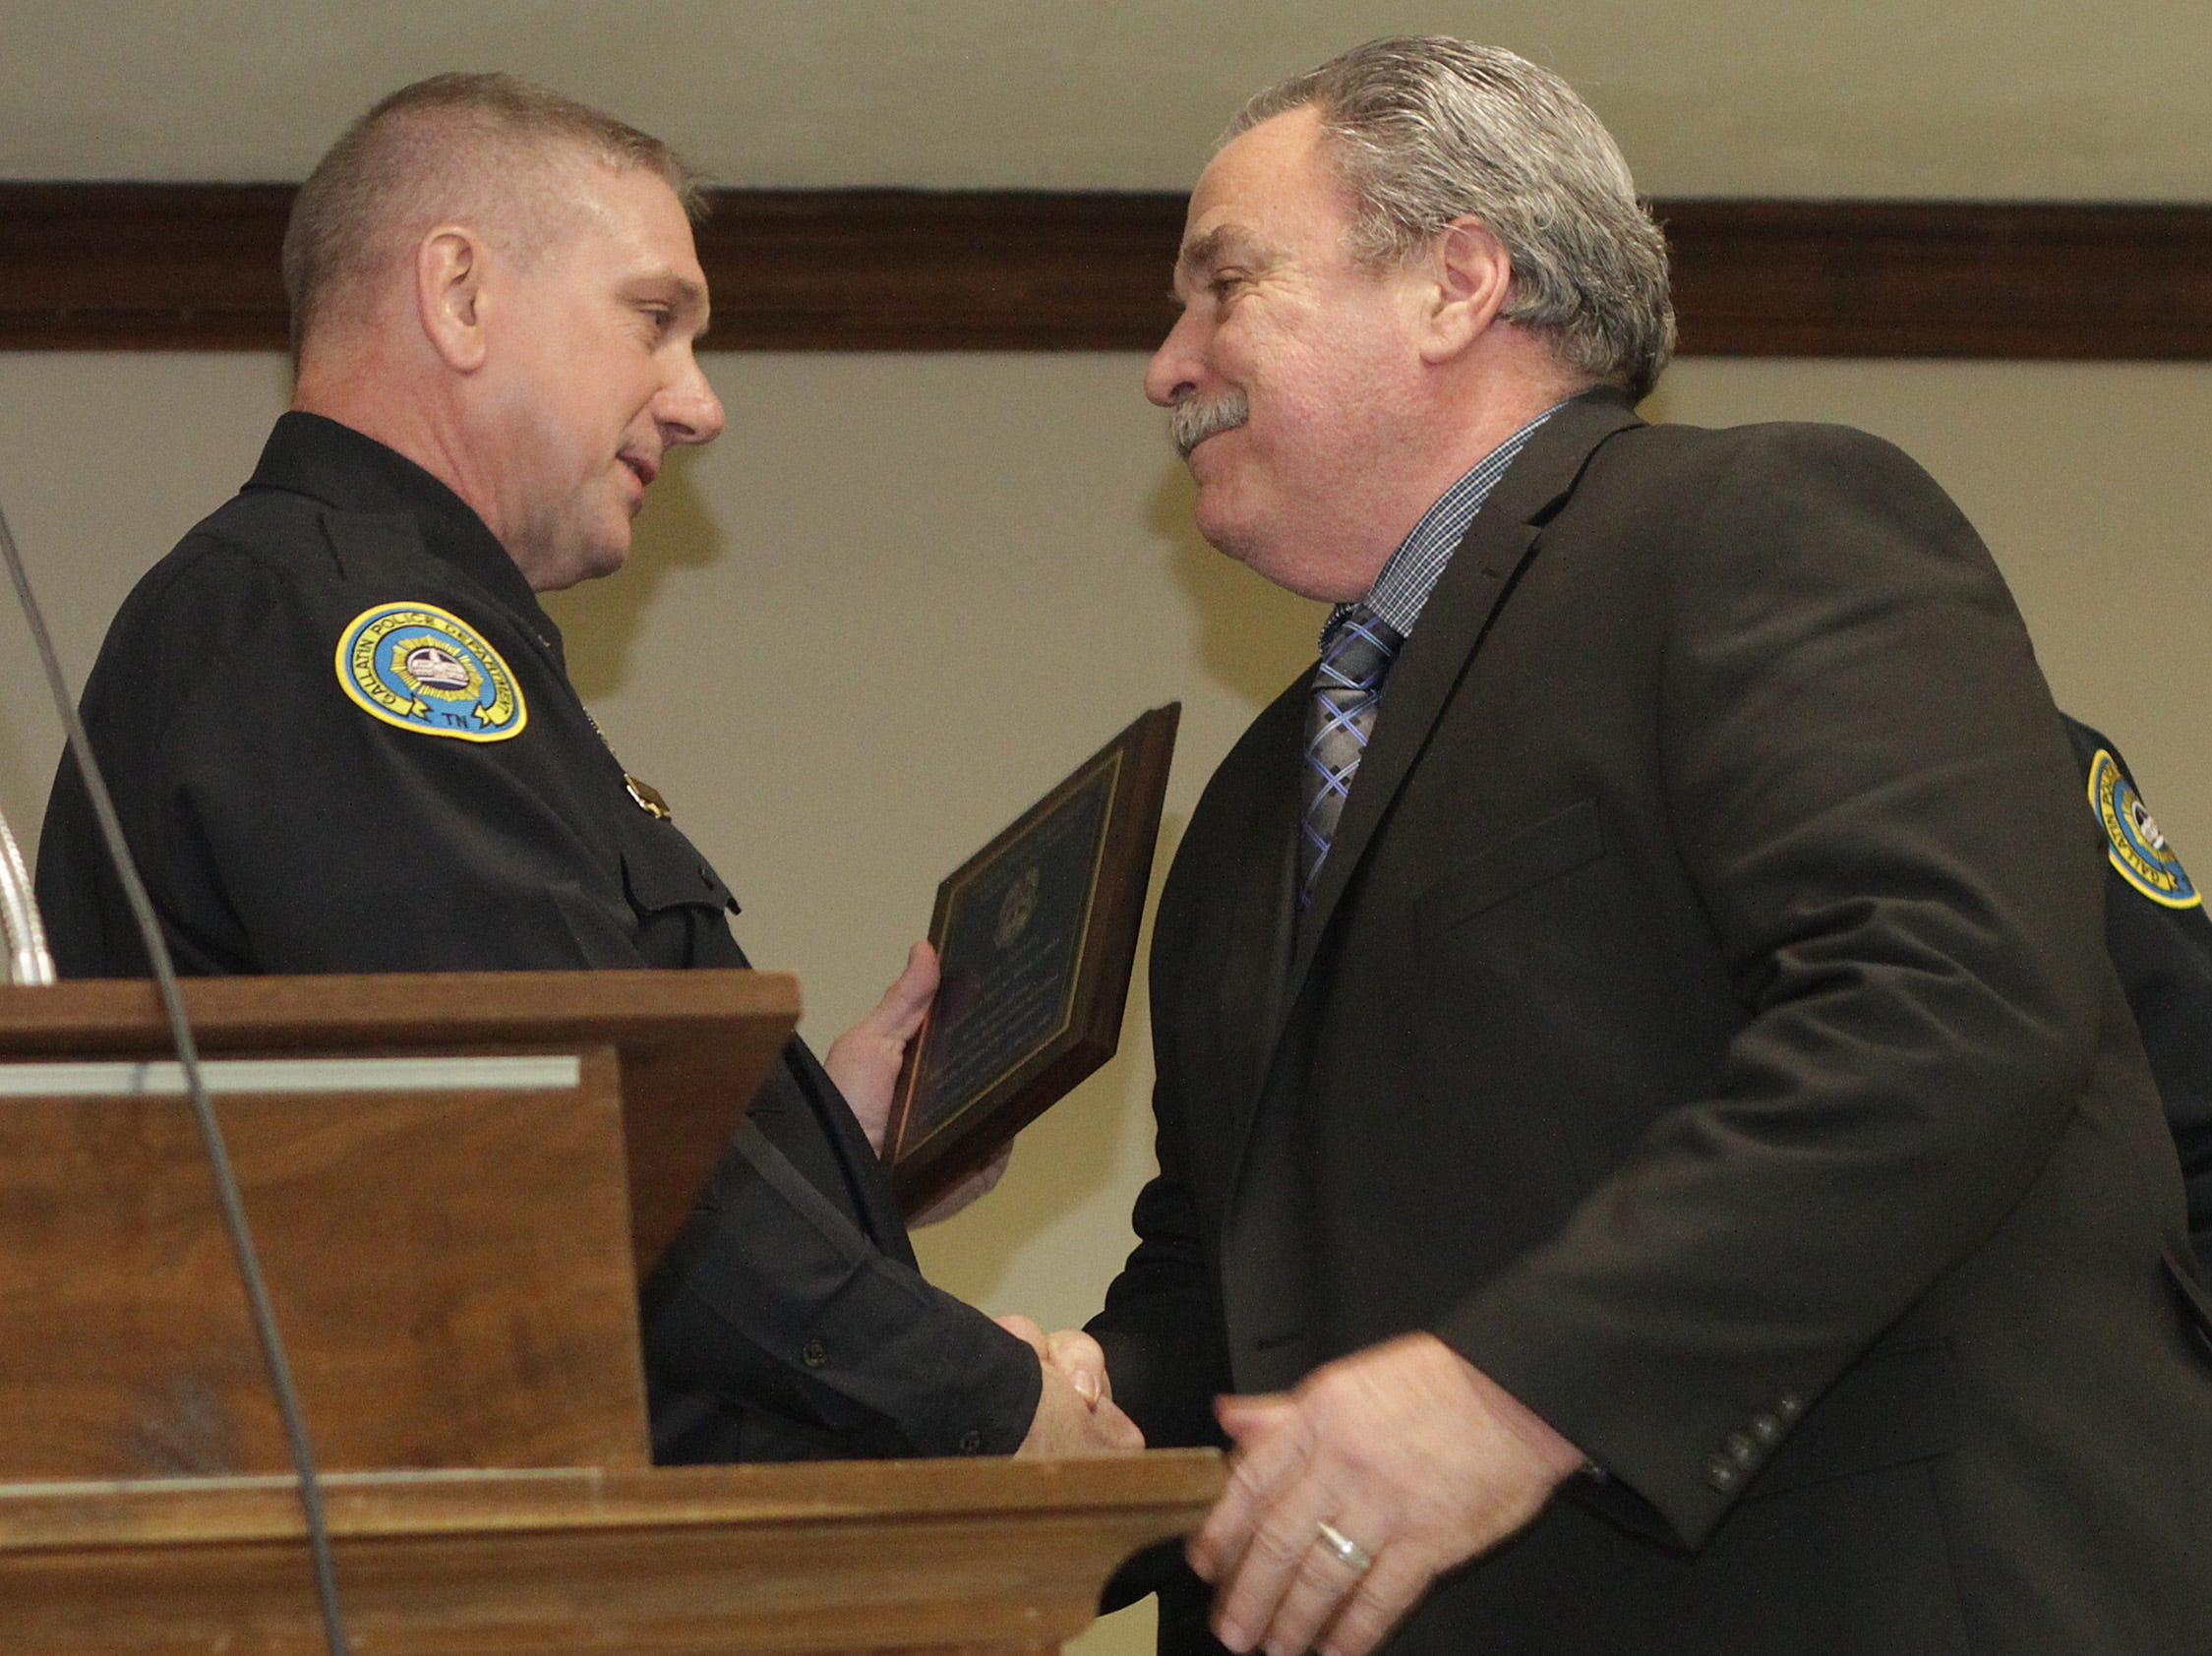 Assistant Chief William Sorrells presents a Lifetime Achievement award to Stan Jones at the Gallatin Police Dept. Awards Ceremony for 2018 Achievements on Thursday, March 21, 2019.